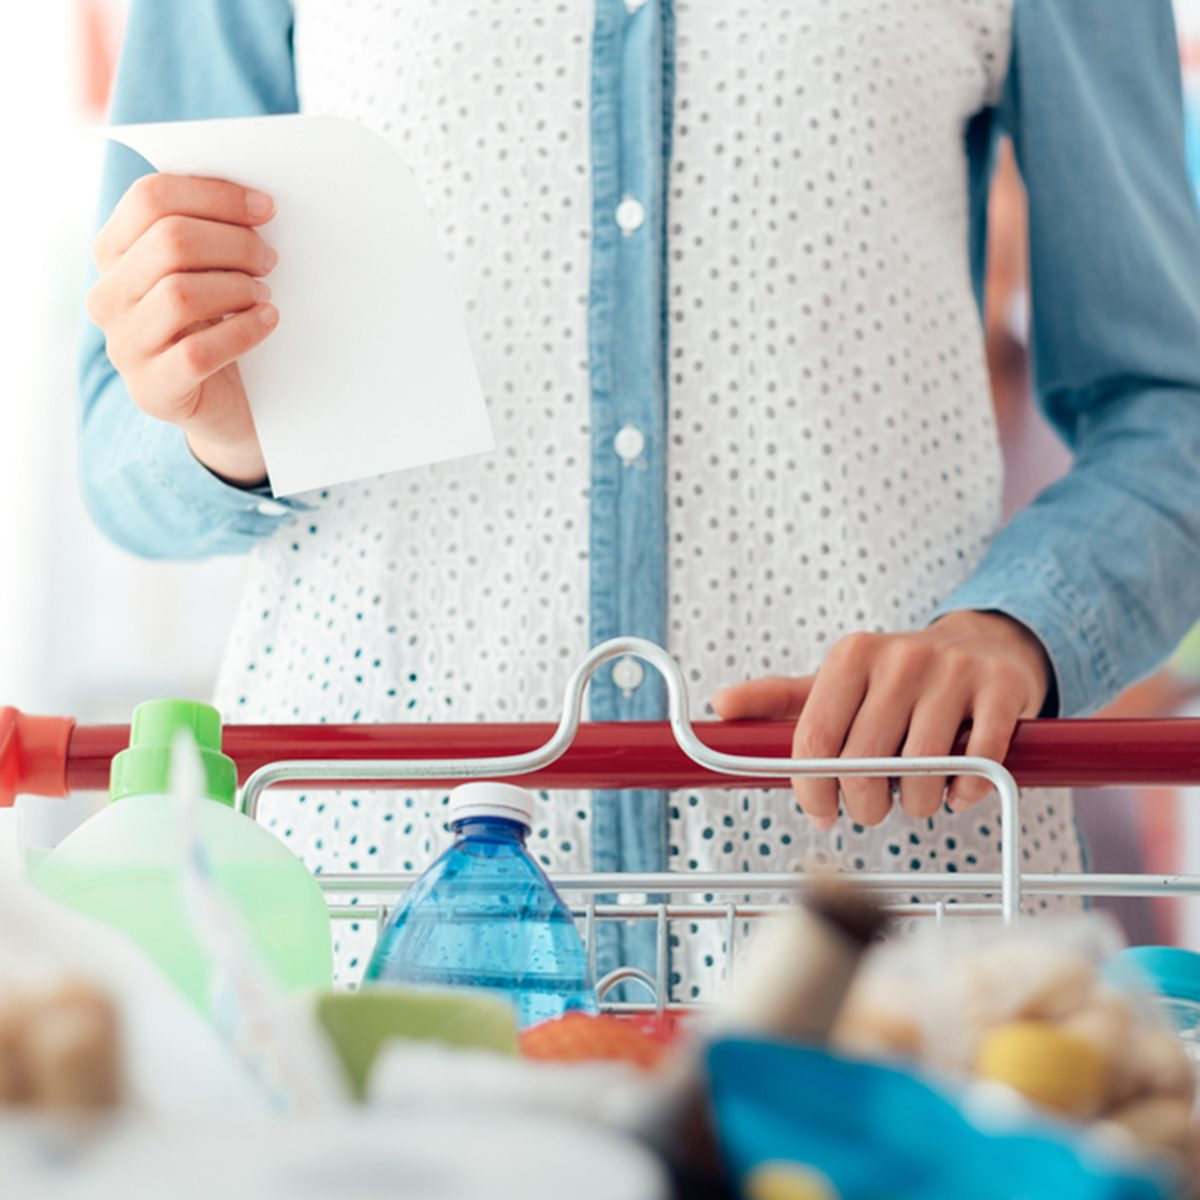 Woman doing grocery shopping at the supermarket